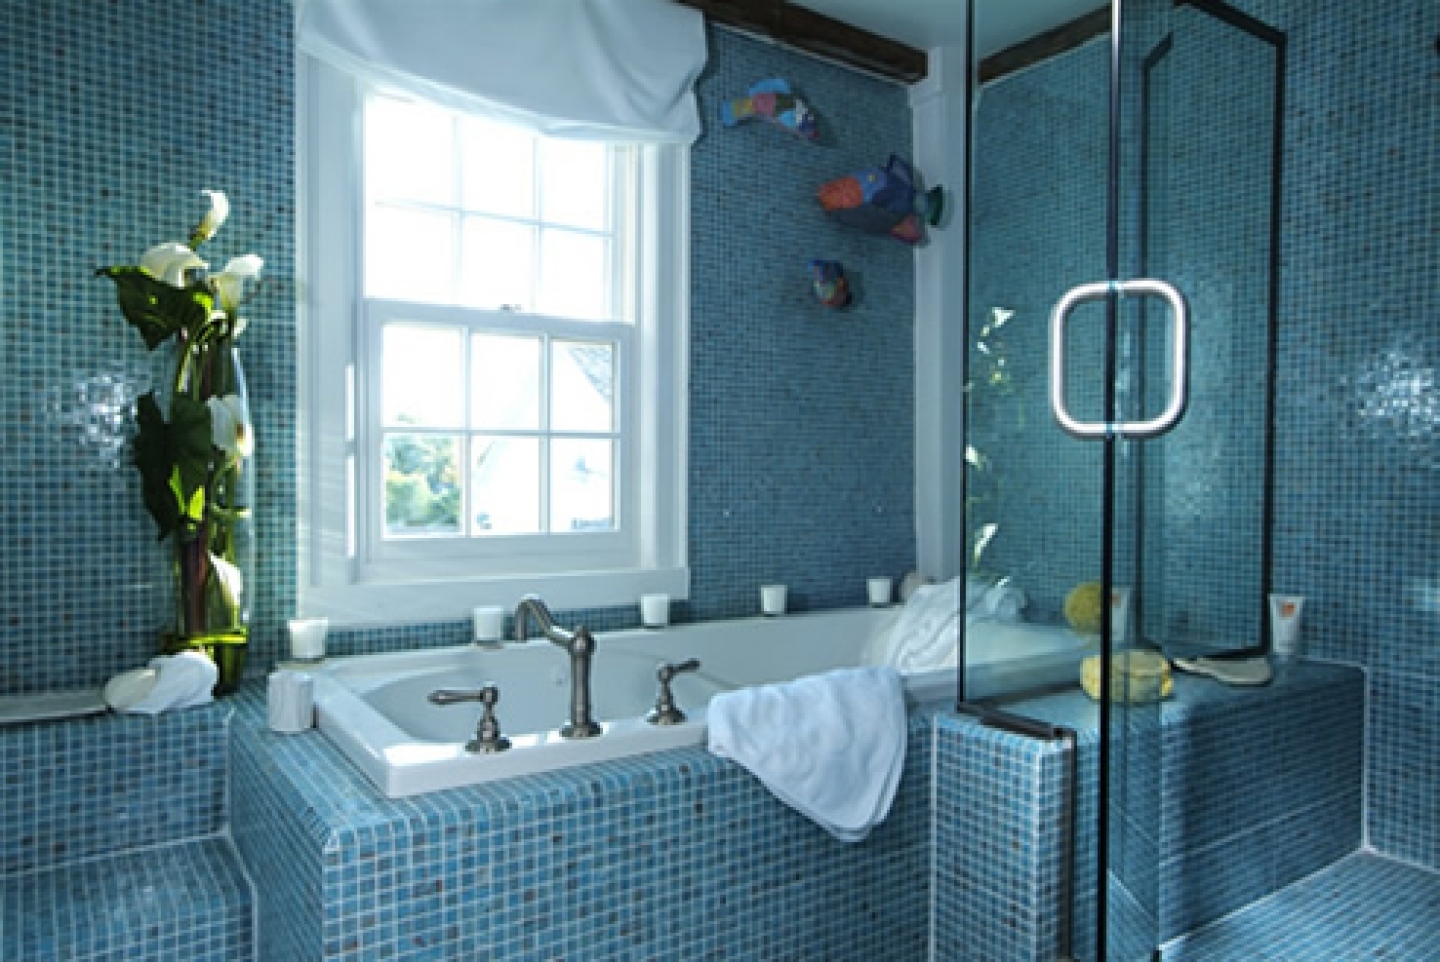 40 vintage blue bathroom tiles ideas and pictures for Blue mosaic bathroom accessories